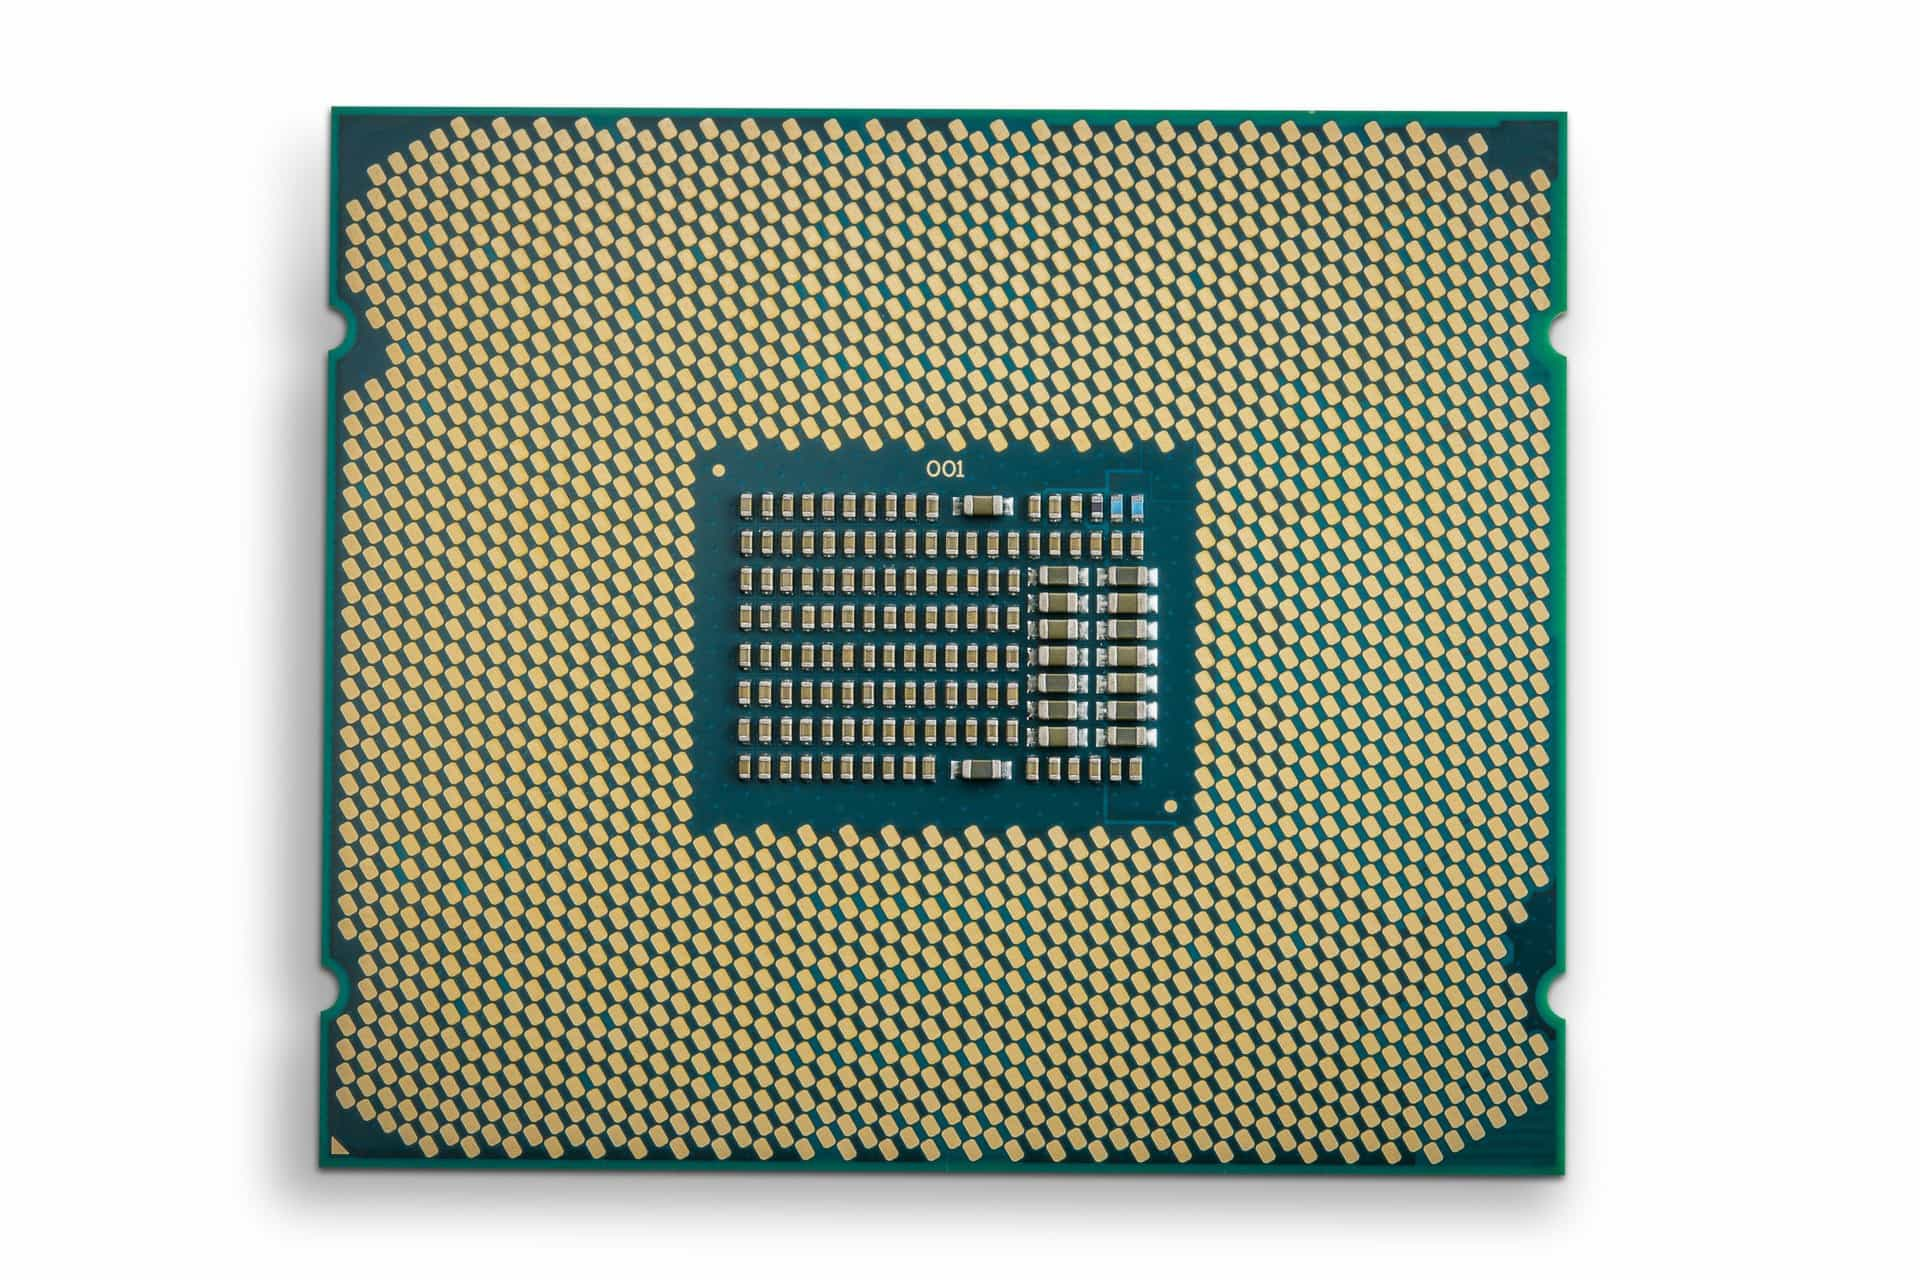 Intel Core i9 Skylake X 02